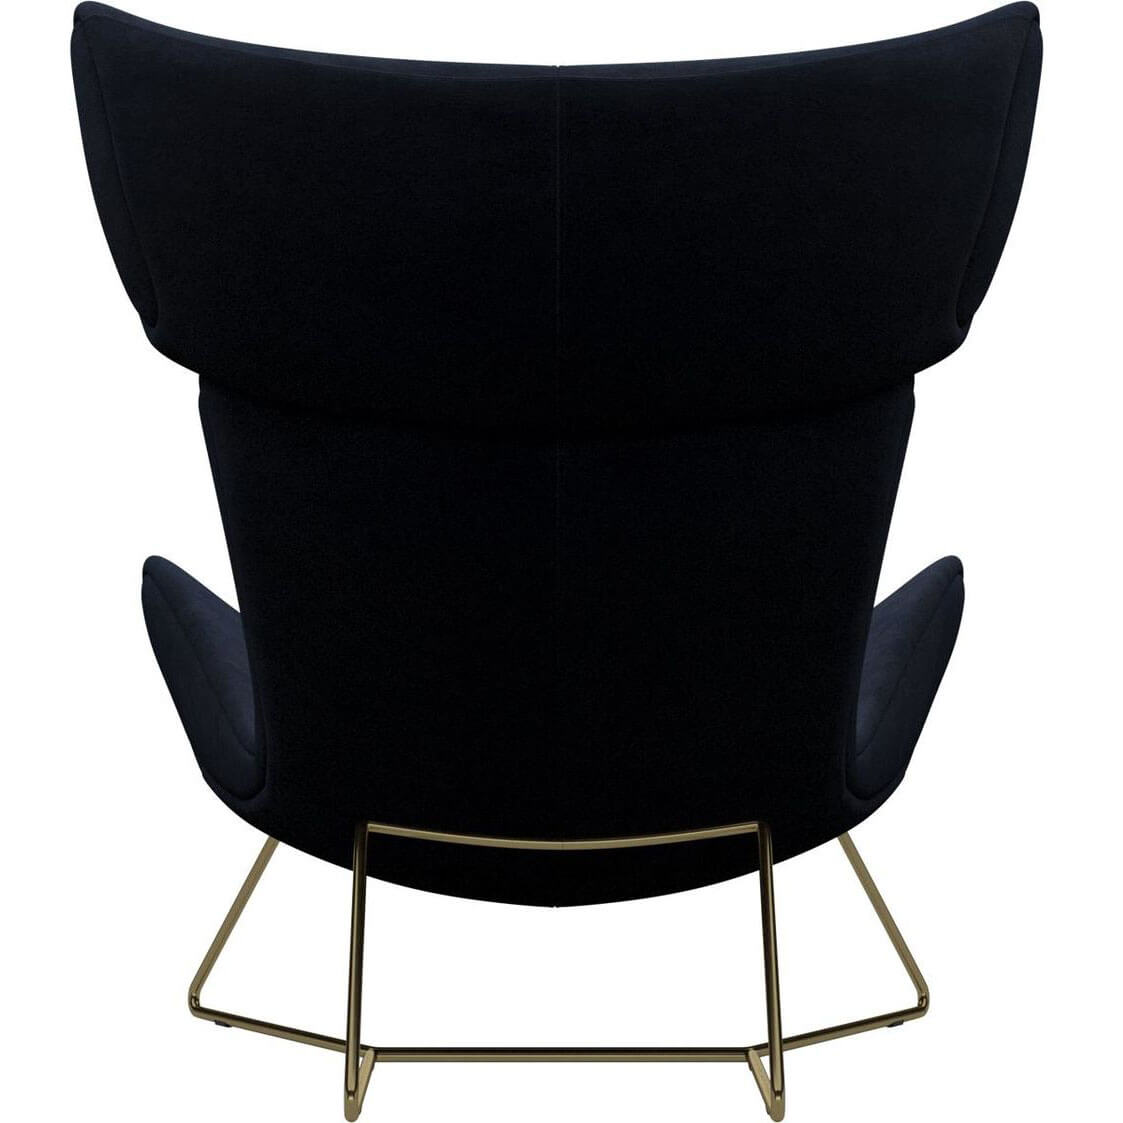 china-boconcept-imola-armchair-reproduction-manufacturer